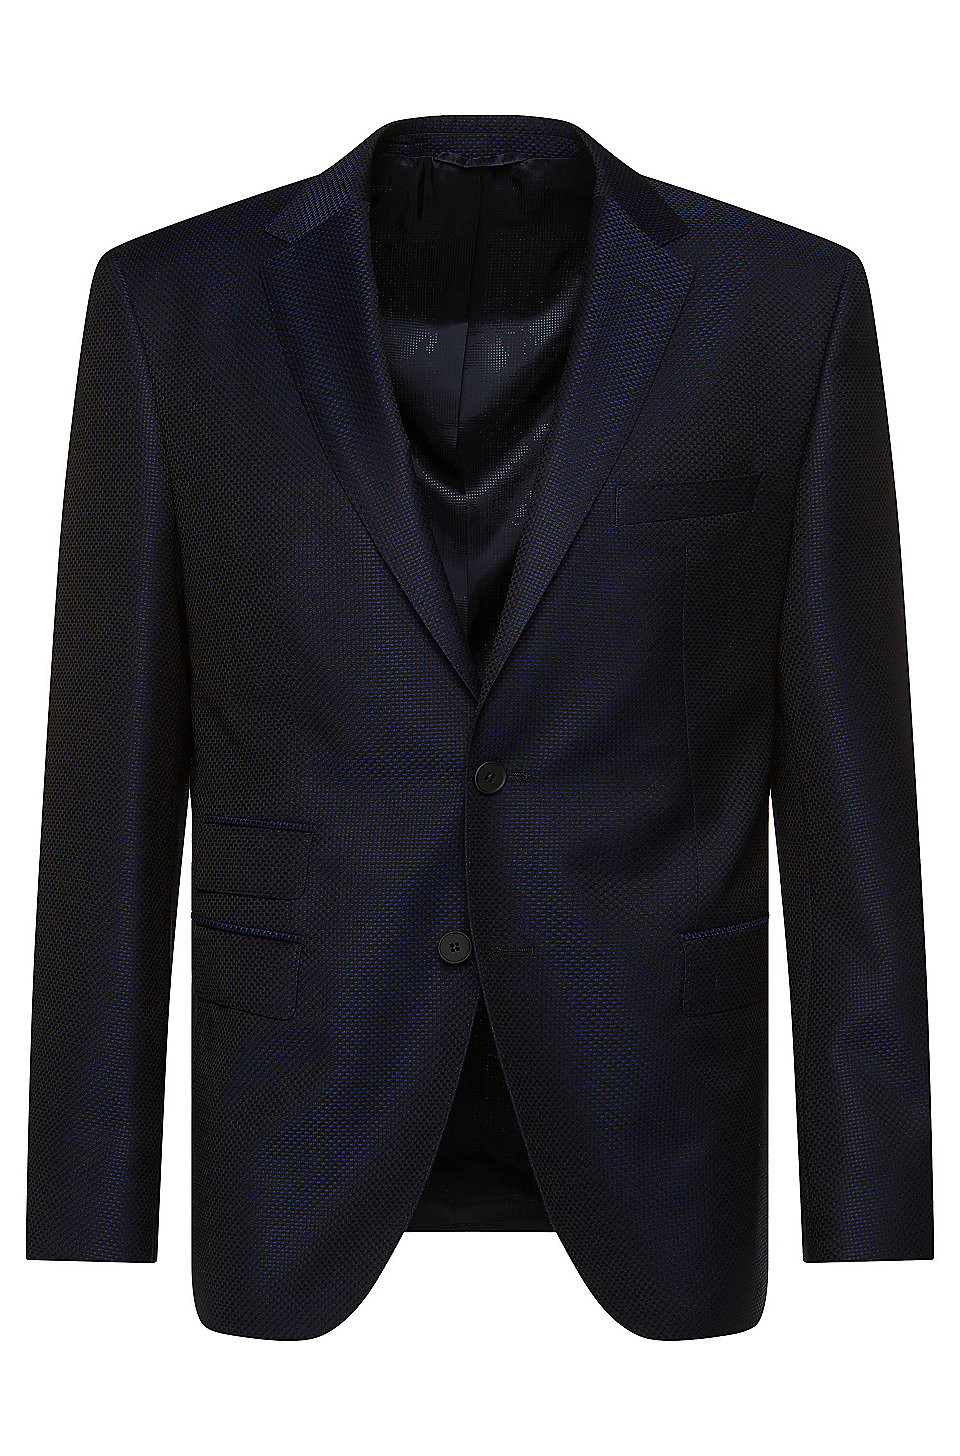 HUGO BOSS® Men's Sport Coats on Sale | Free Shipping